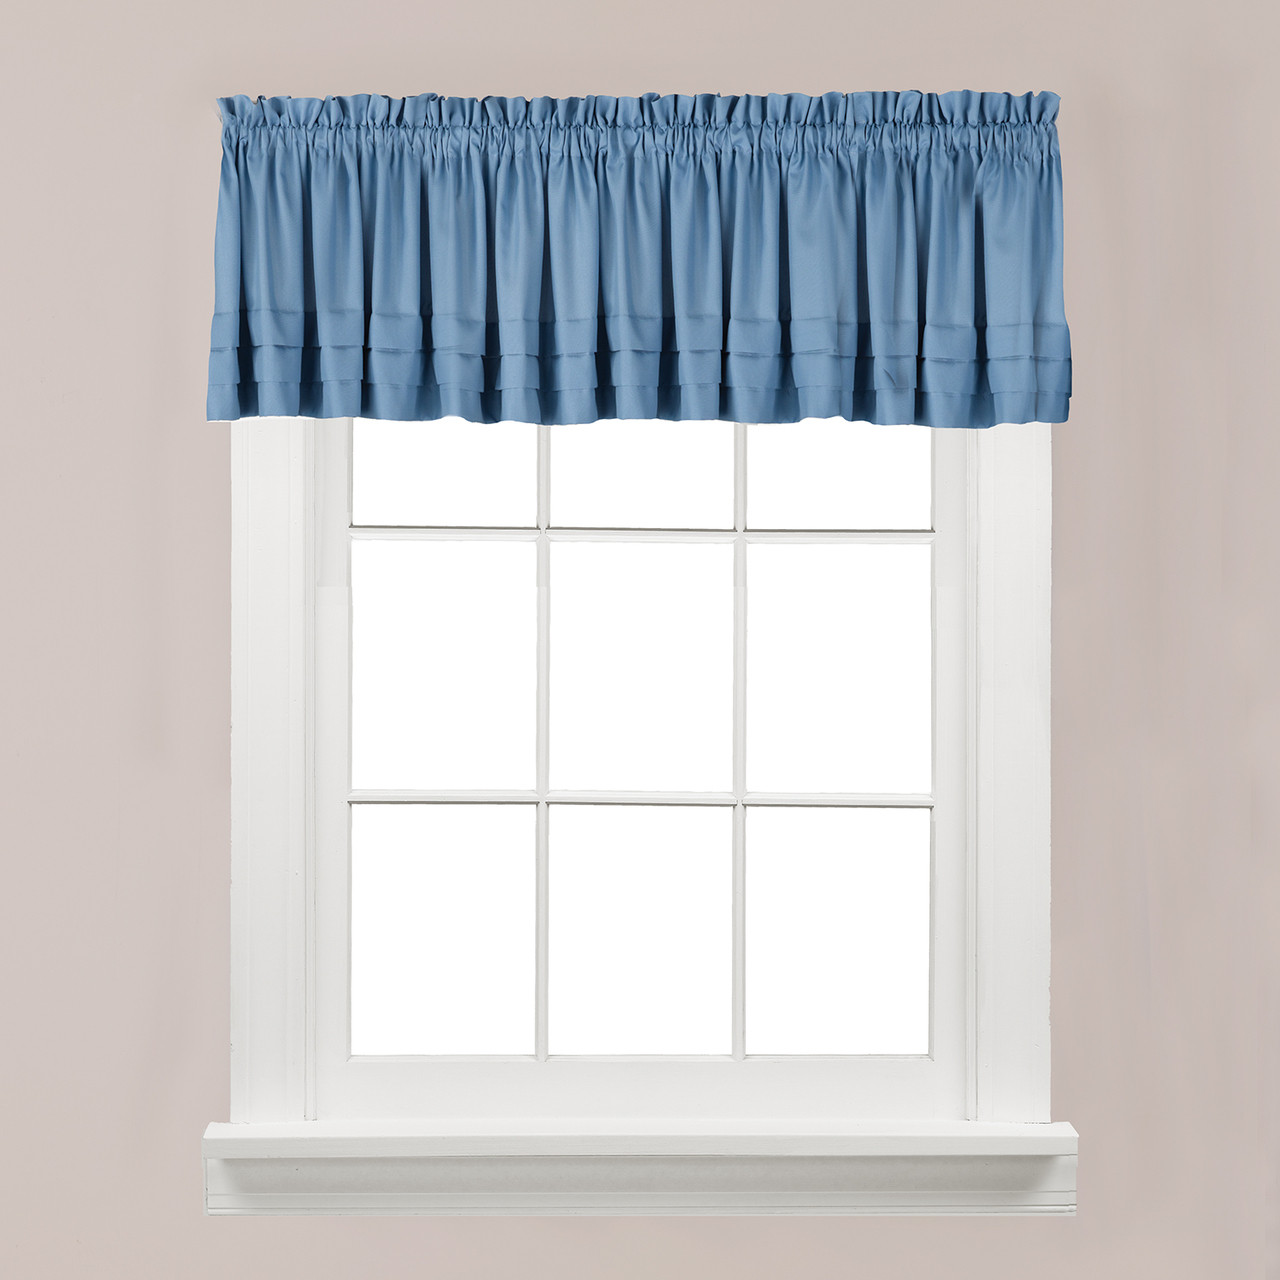 blue kitchen valance gerber faucet holden smoke linens4less com from saturday knight